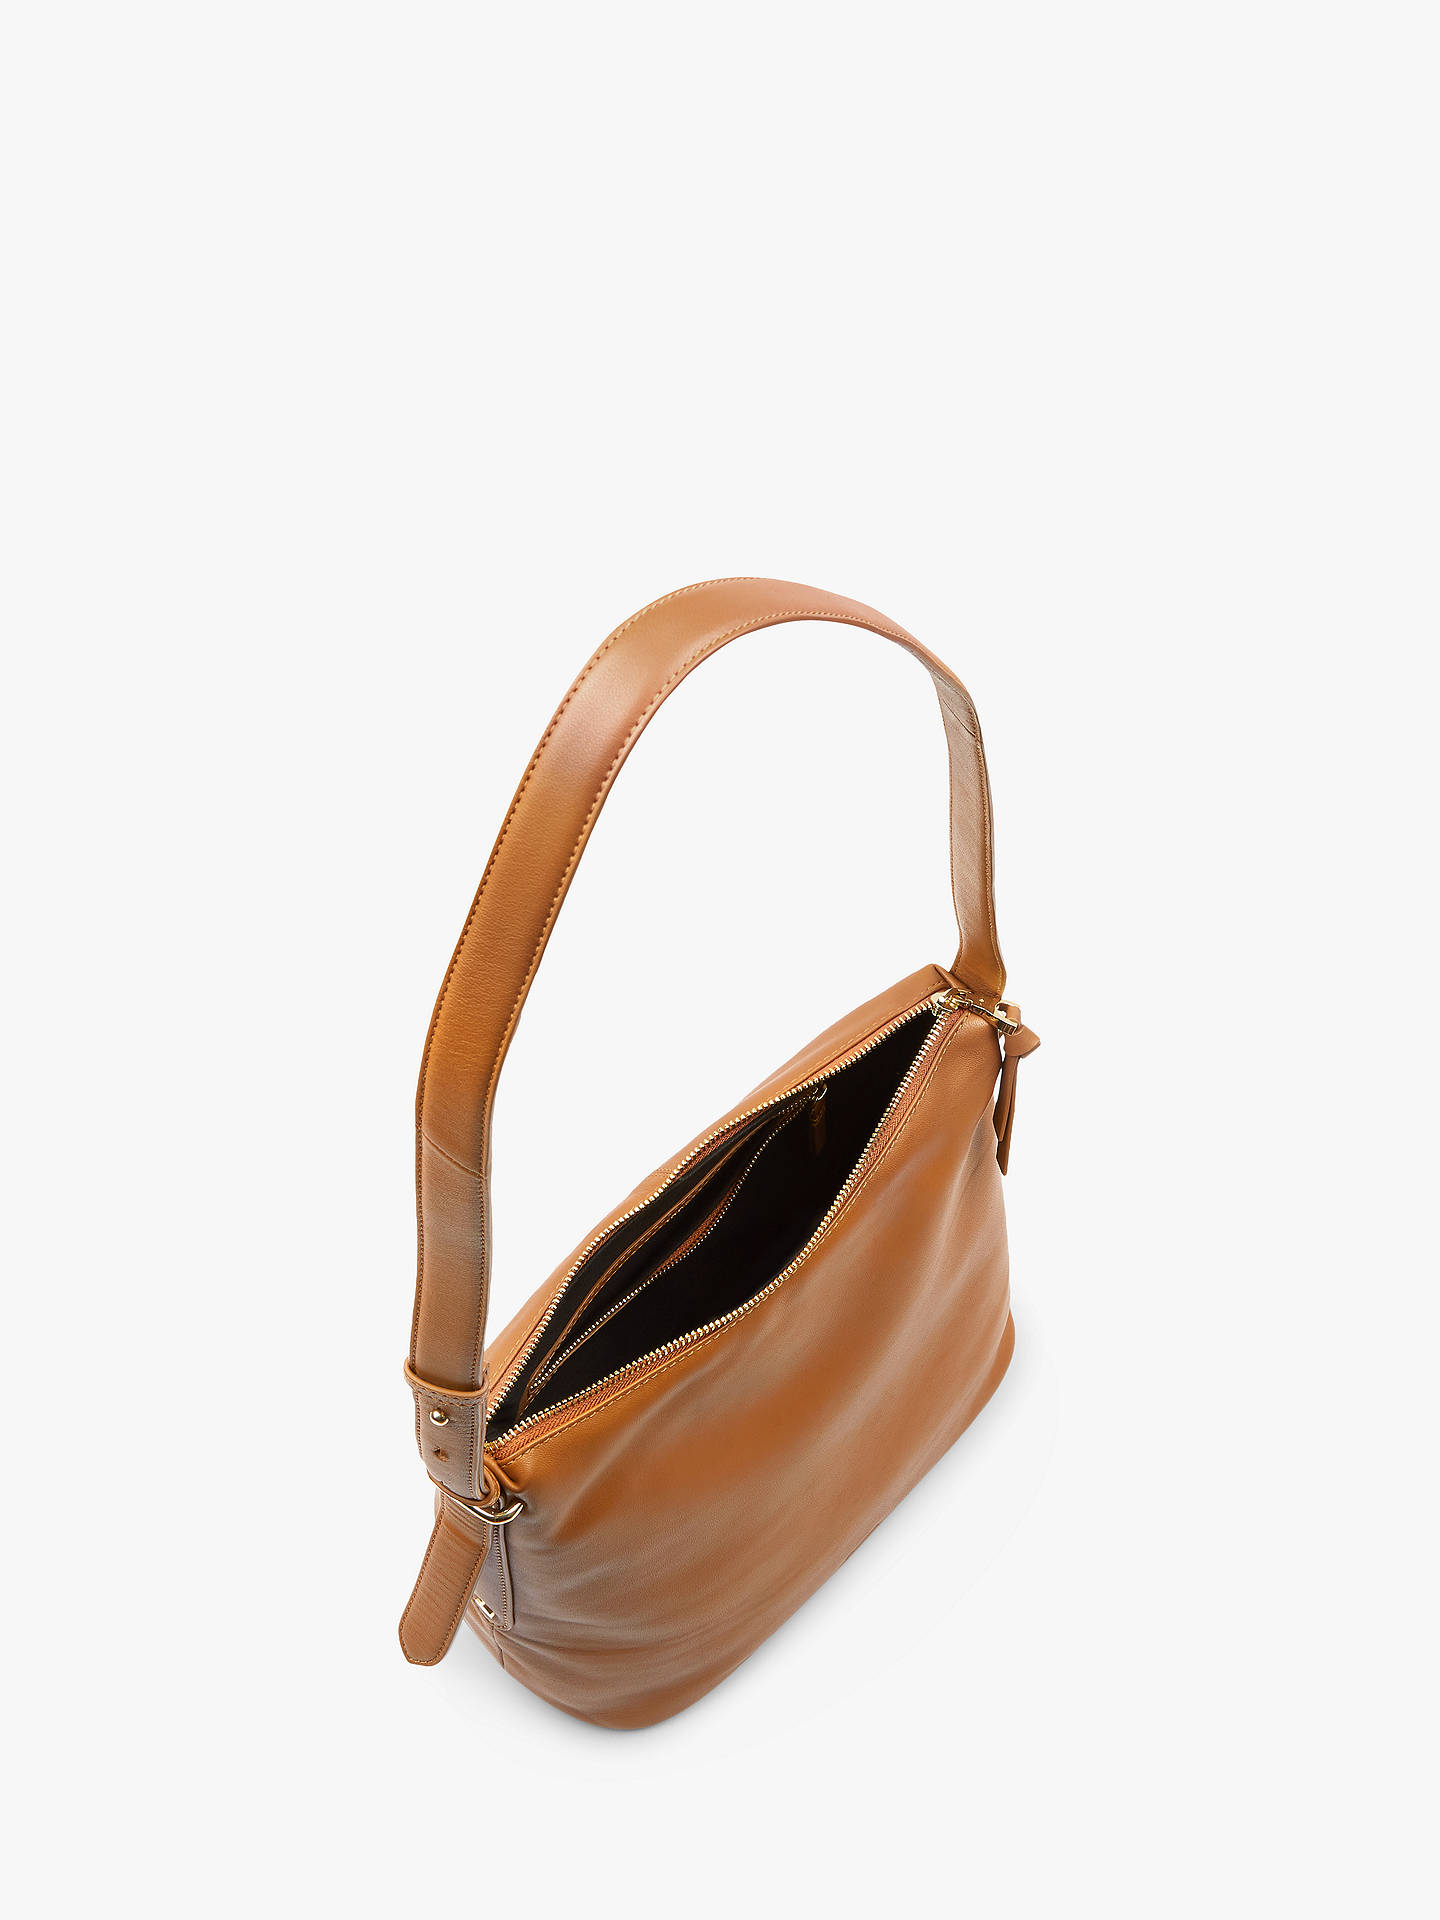 b00f84767803 ... Buy Jaeger Maisie Small Hobo Leather Shoulder Bag, Tan, One Size Online  at johnlewis ...